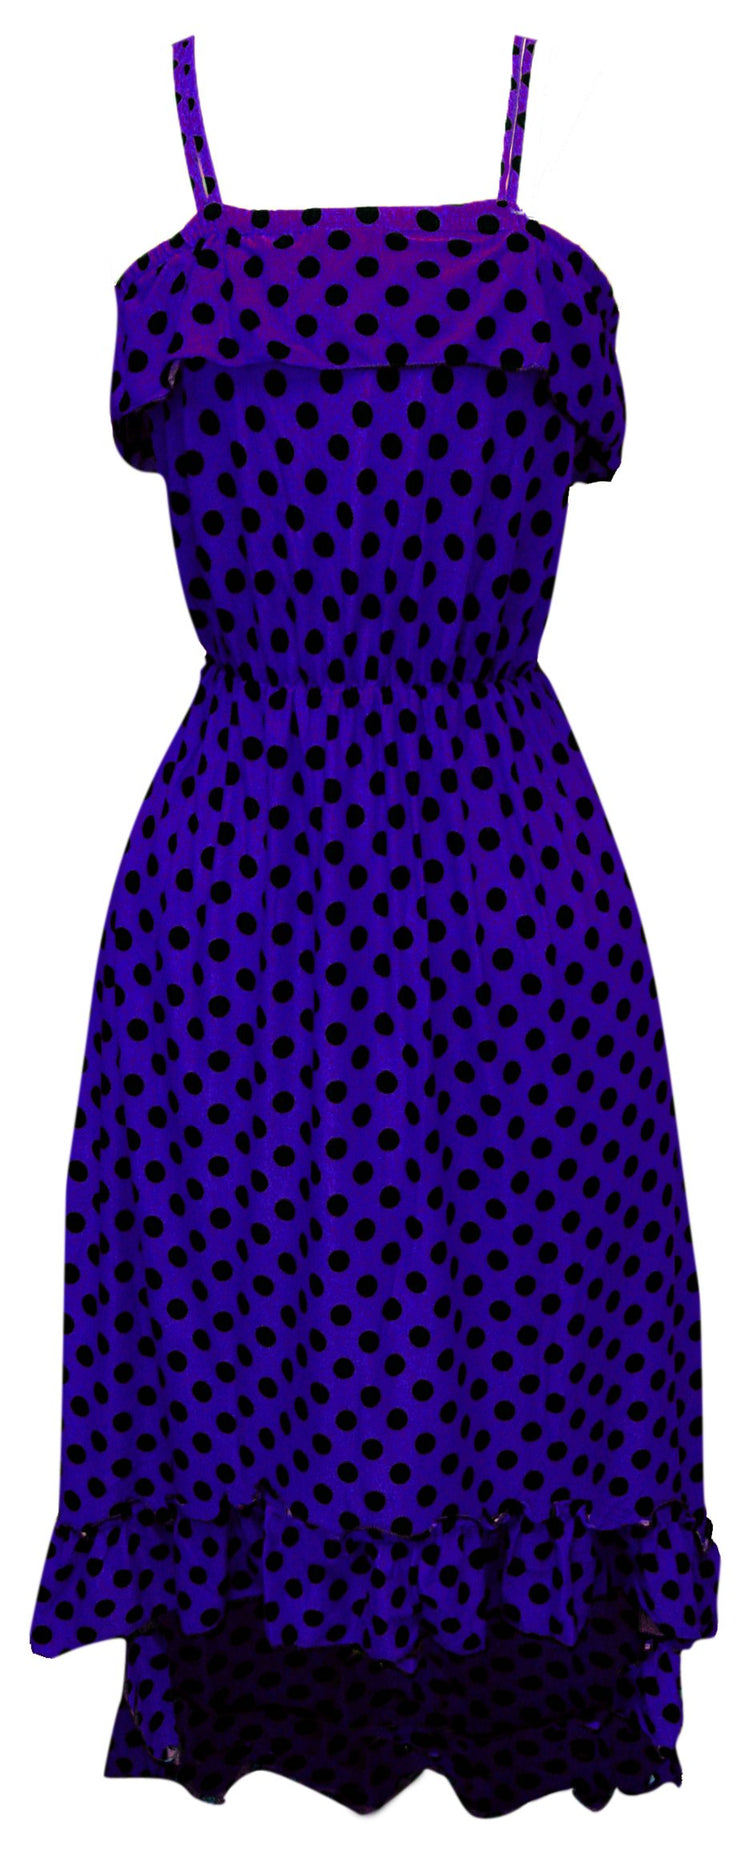 A1277-PolkaDot-Maxi-Dress-Viol-BLK-M-SM